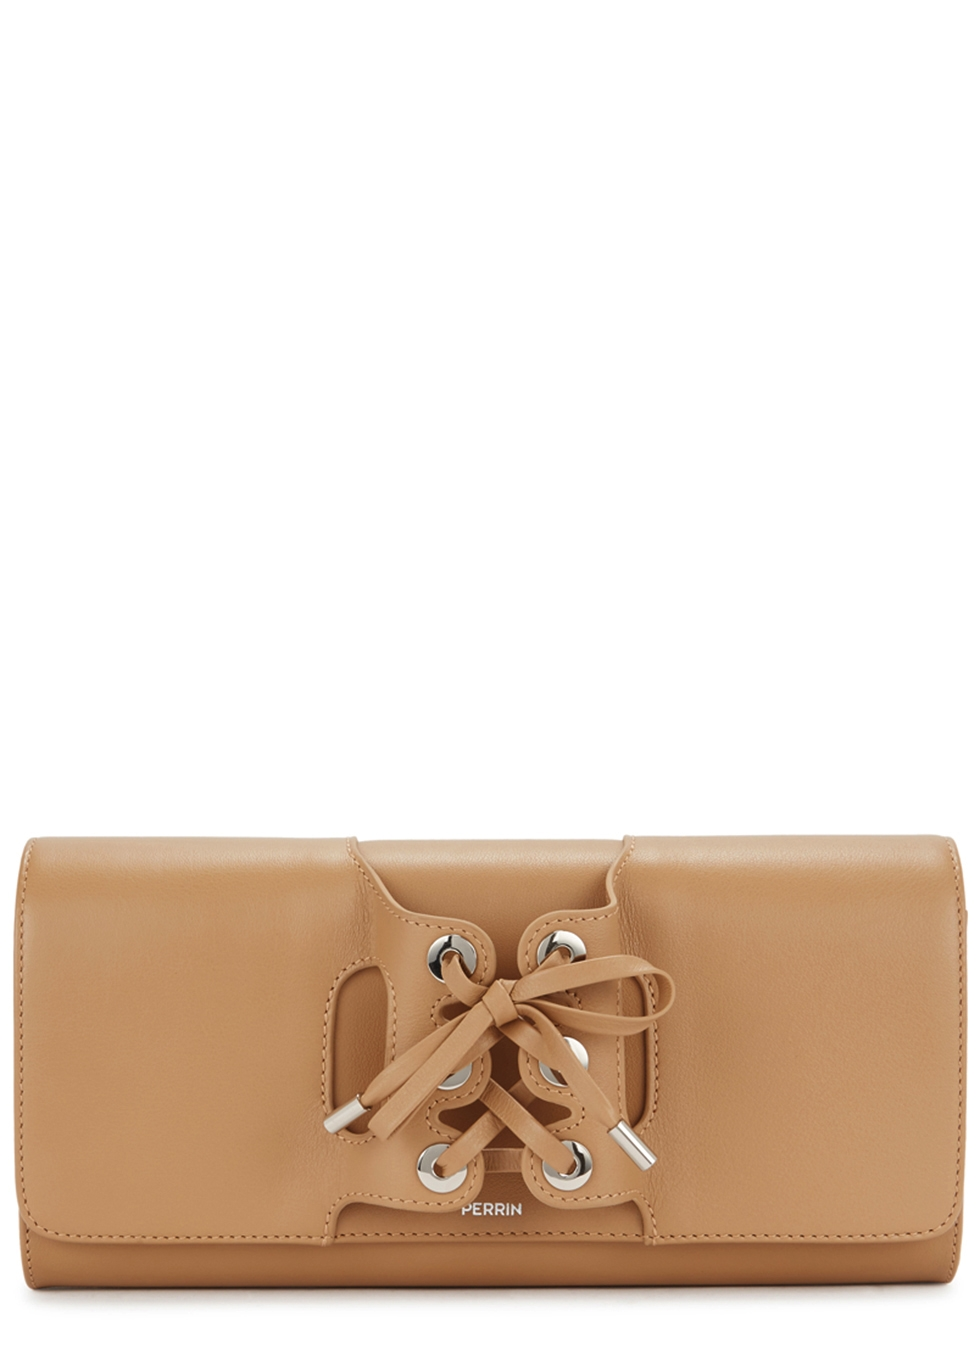 PERRIN LE CABRIOLET CAMEL LEATHER CLUTCH